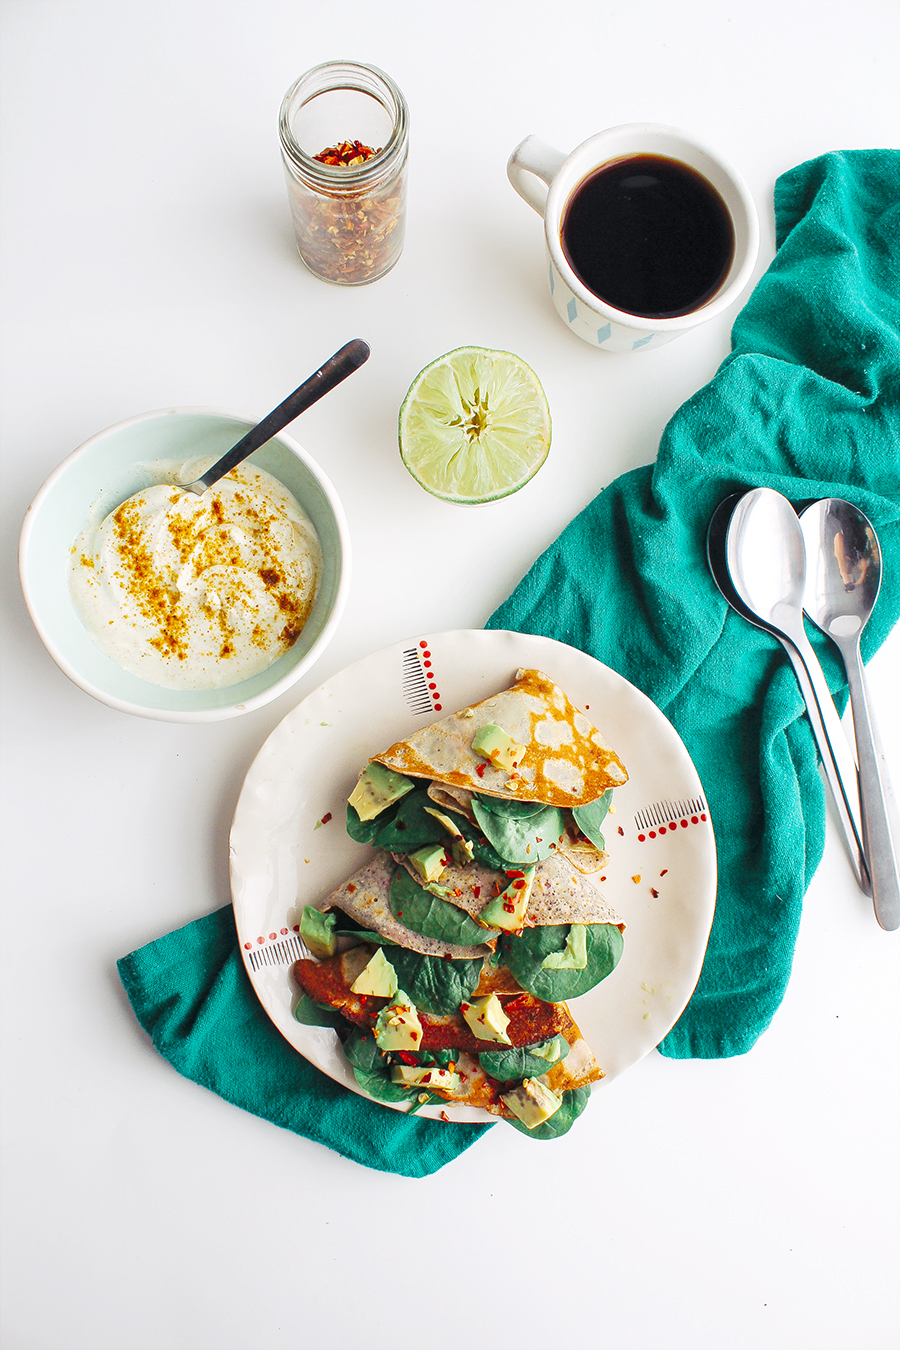 Spinach & Avocado Stuffed Cornmeal Crepes with Curry-Lime Cream